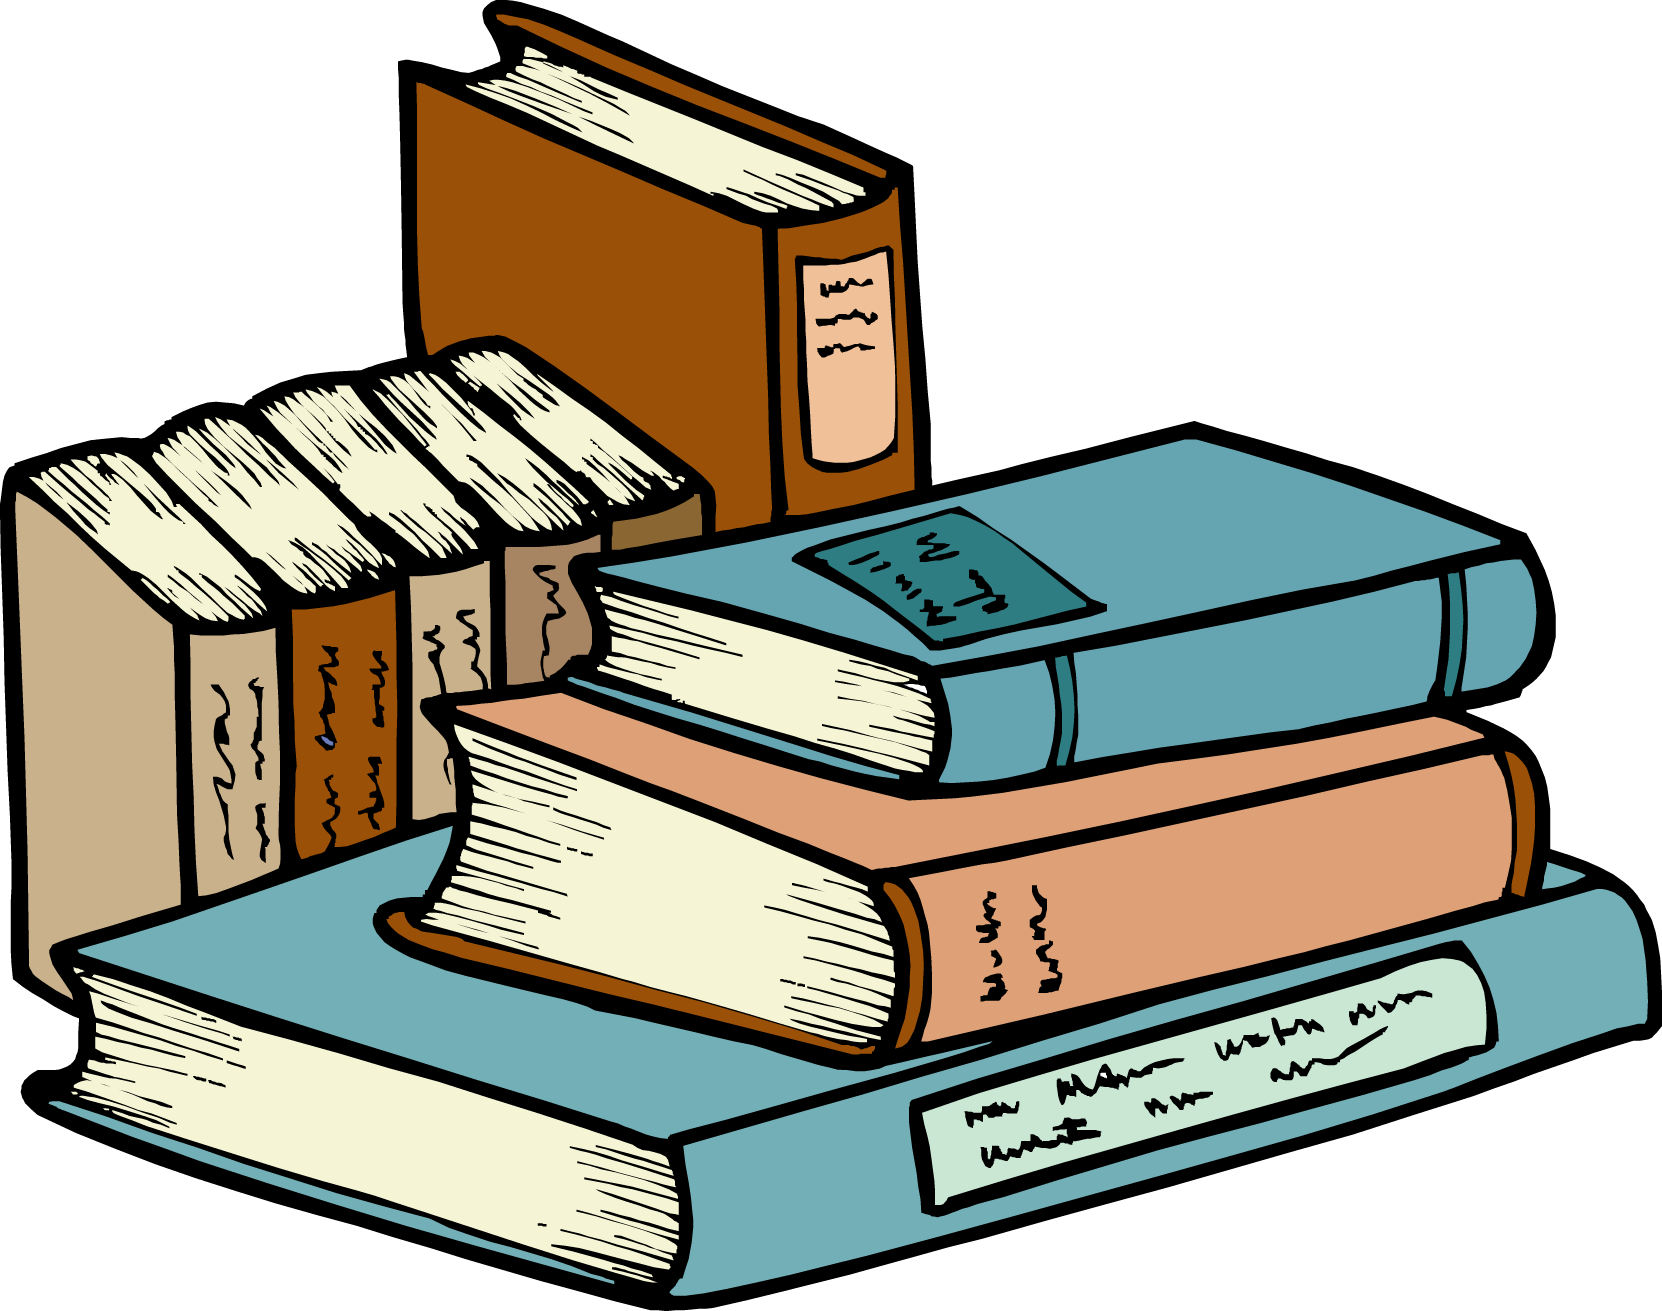 News clipart non fiction. Our library collection west